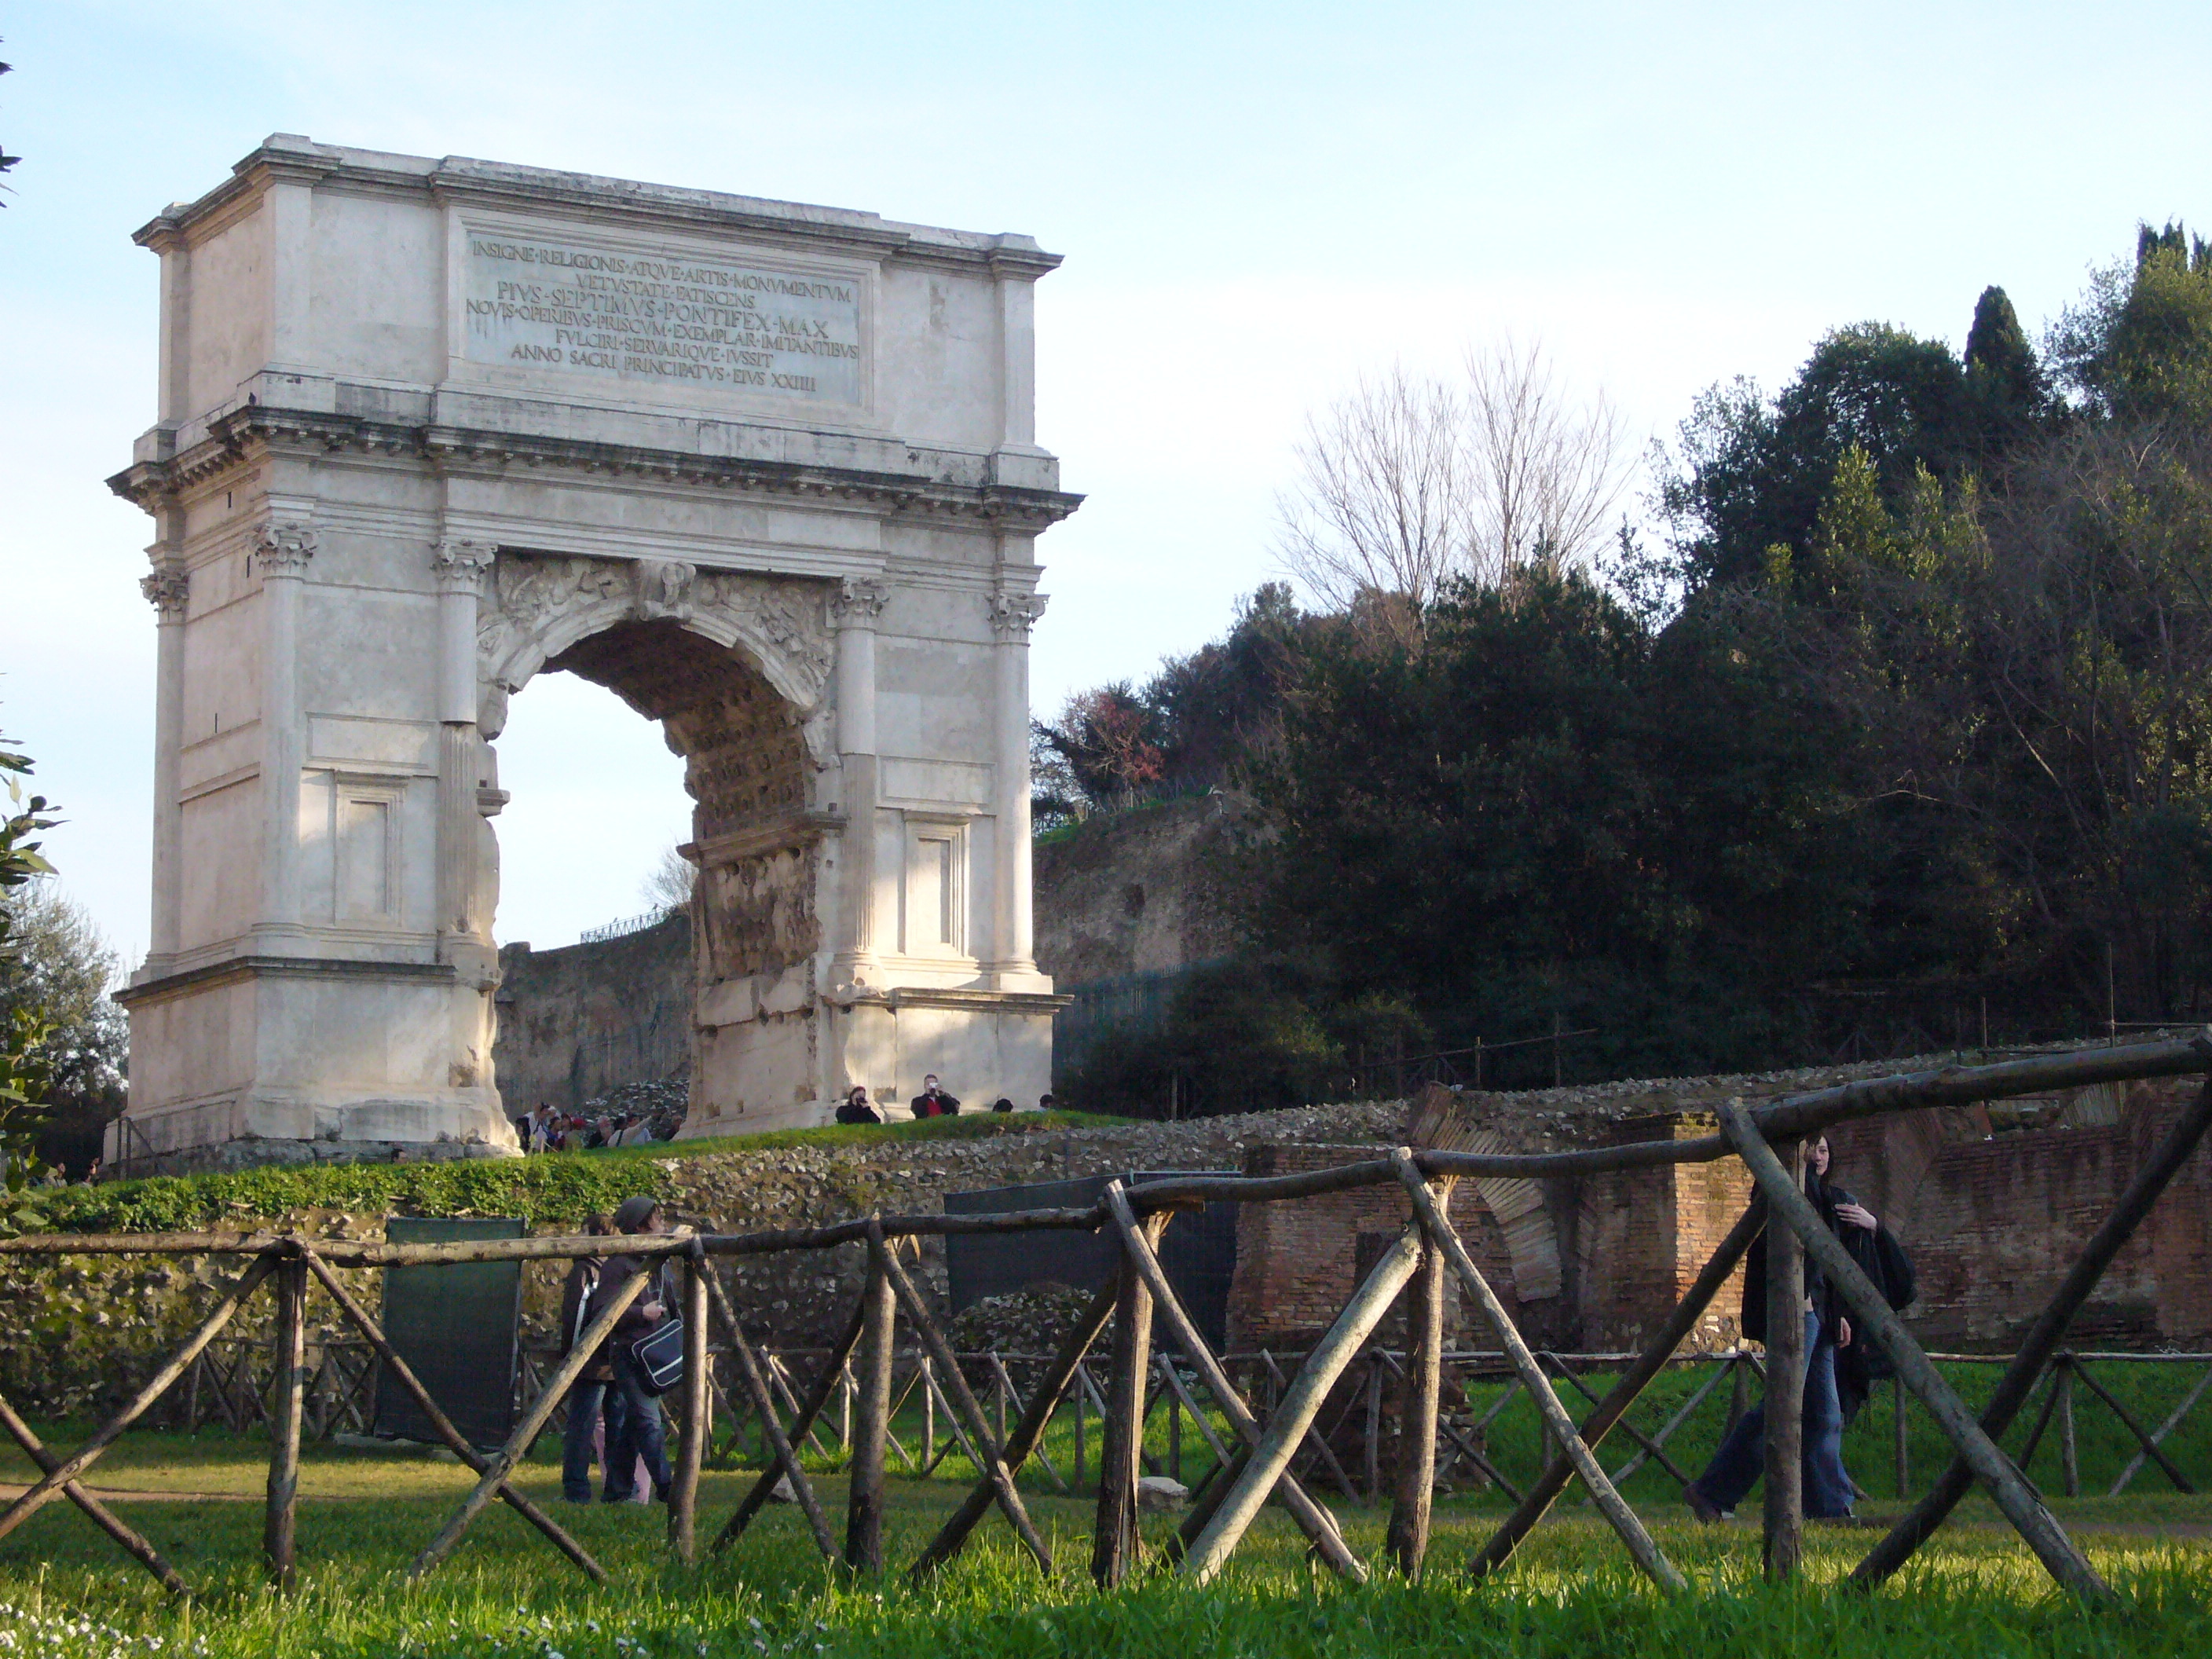 The Arch of Titus, praising Titus for subduing the Jews, inspired the later Arc de Triomphe in Paris.